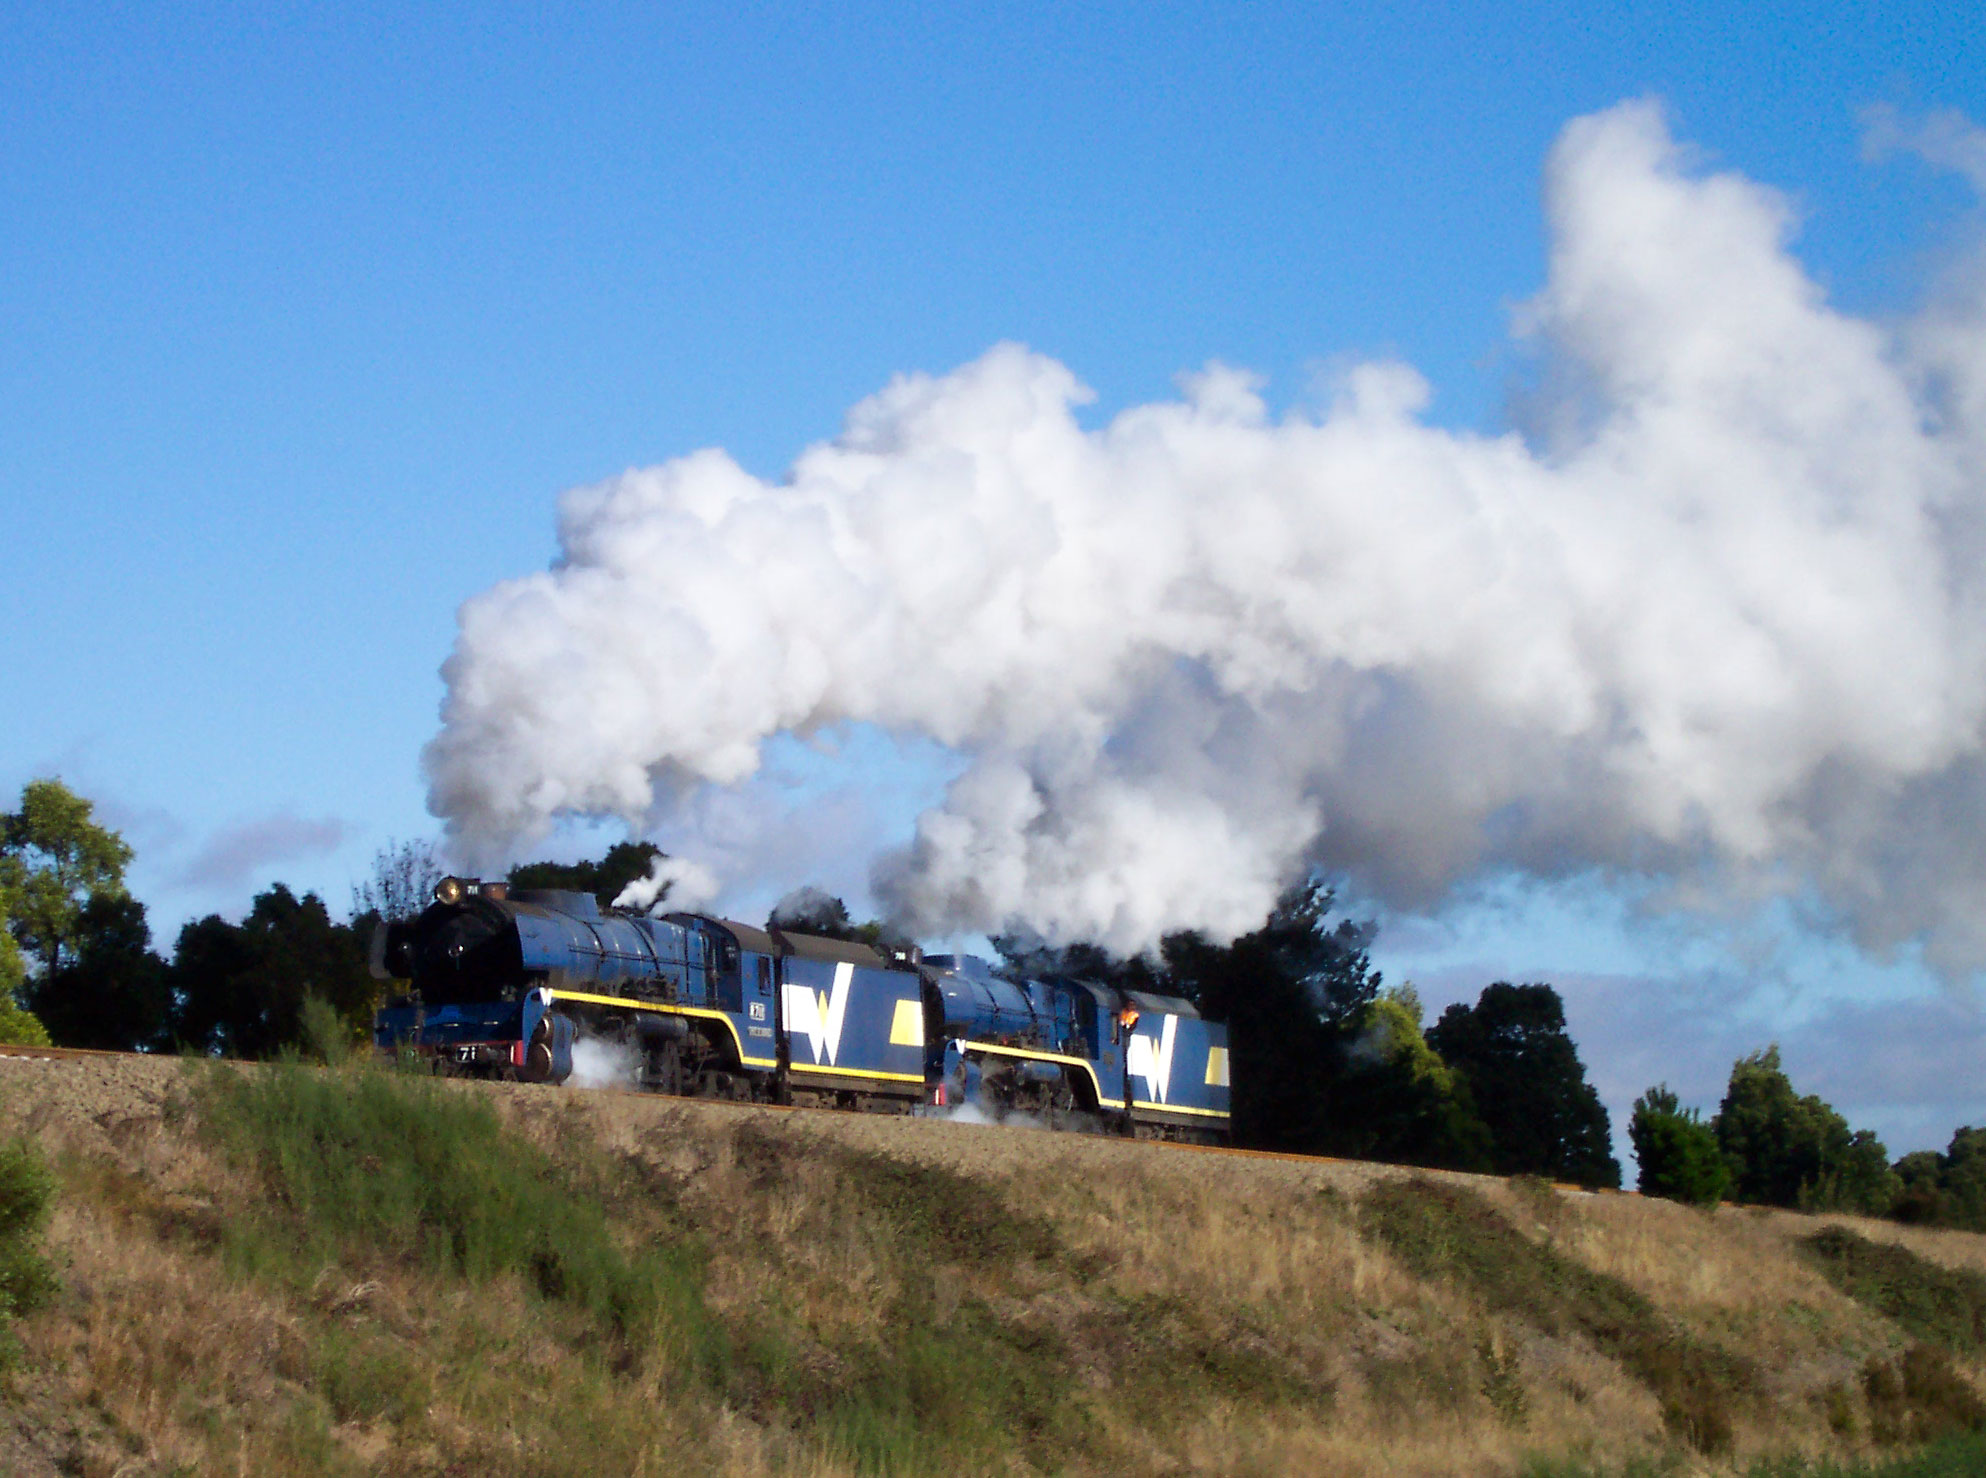 West Coast Railway Class R 4-6-4s numbers 711 and 766 undertake a light engine move from Ballarat to Newport on May 11, 2004. Photo: Tony 'Ashcat' Marsden